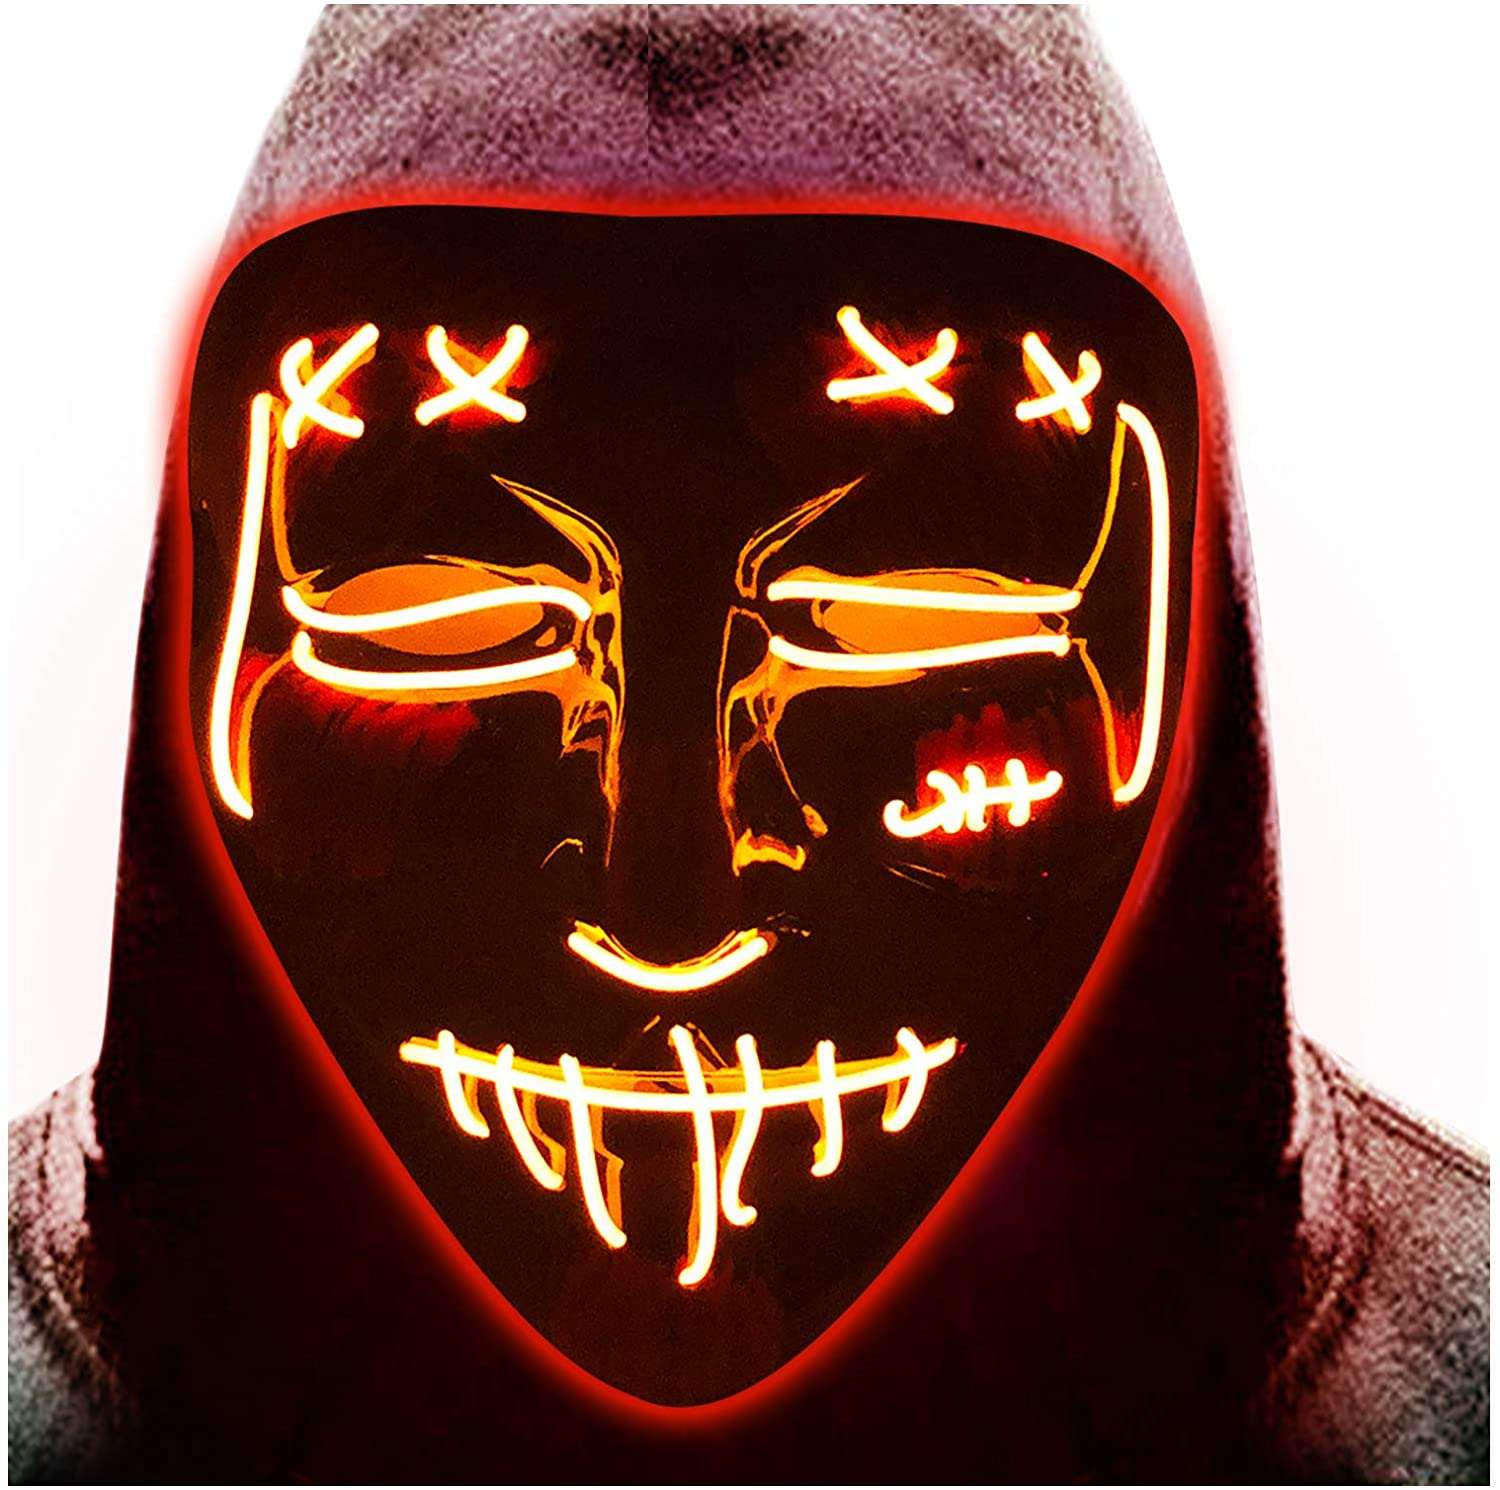 Halloween LED Mask Light Up Scary EL Wire Mask Cosplay Costume Rave Glowing Masks for Festival Party Carnival